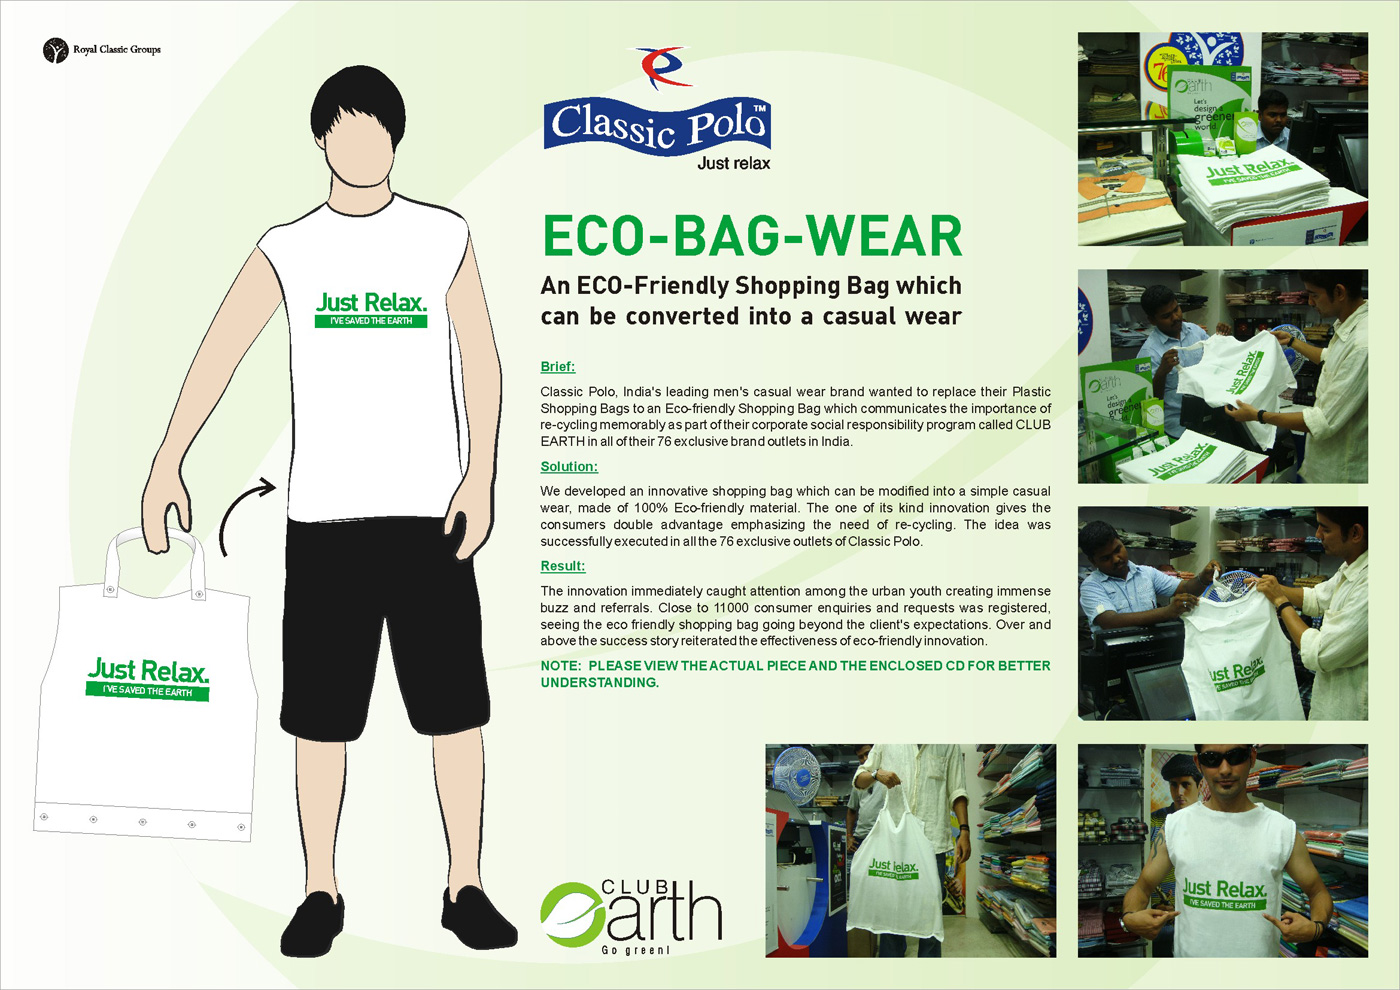 Classic Polo Ambient Advert By TCC: Eco Bag Wear